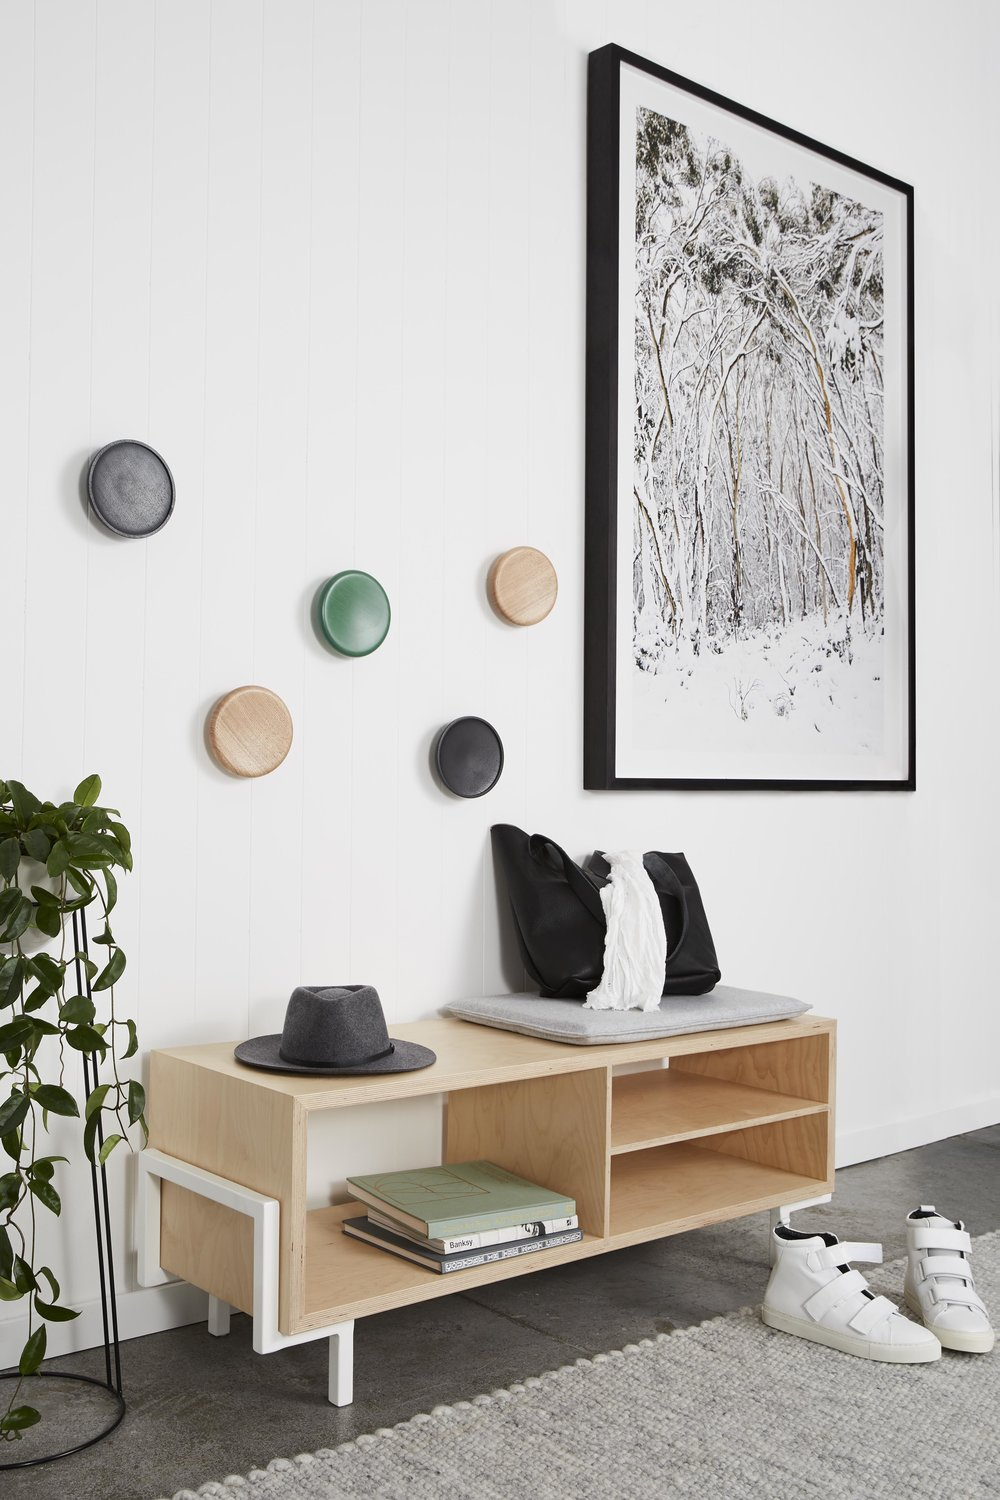 Maitland Street Interiors, Sarah Elshaug, Interior Stylist Melbourne, Felix Furniture Entry